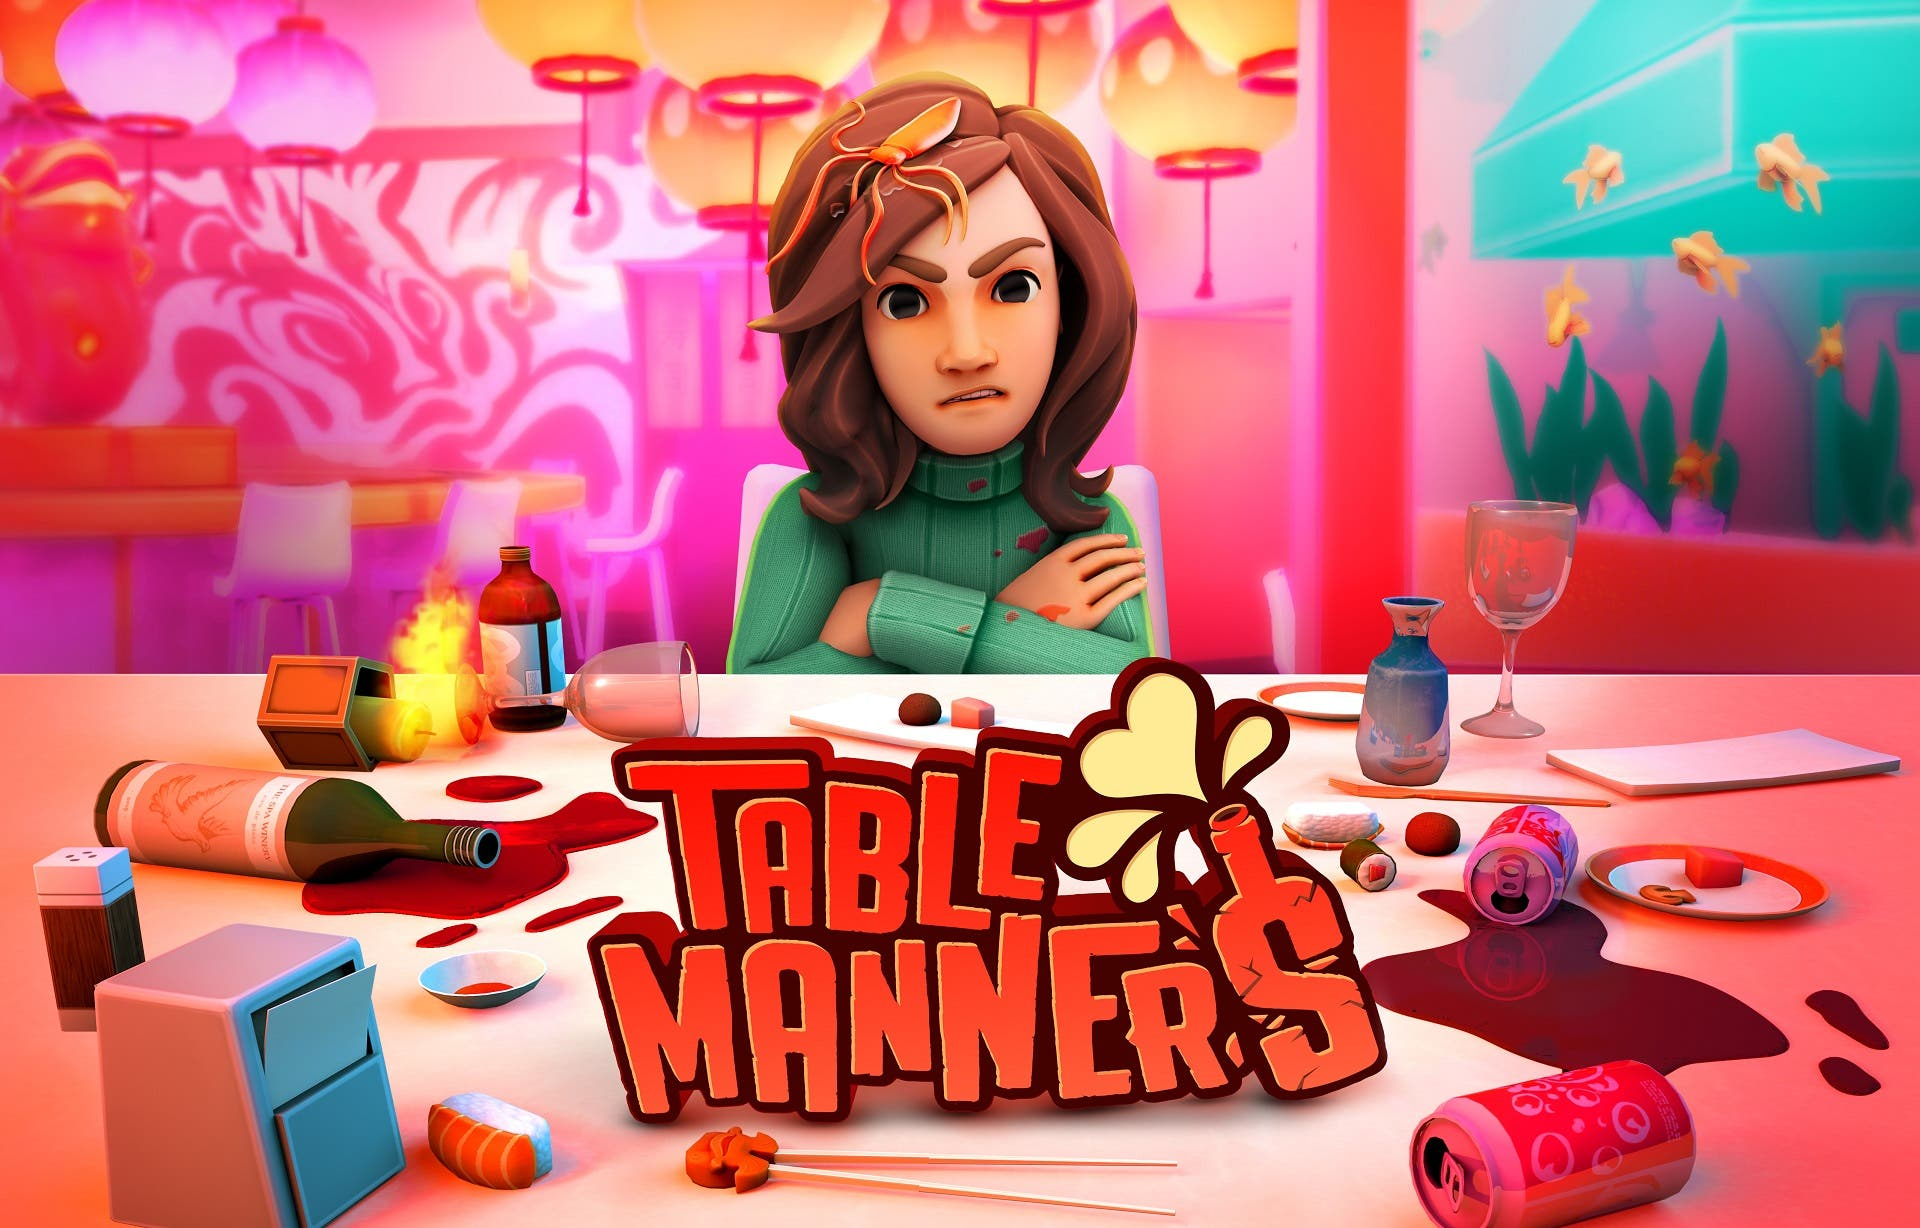 TableManners review featured